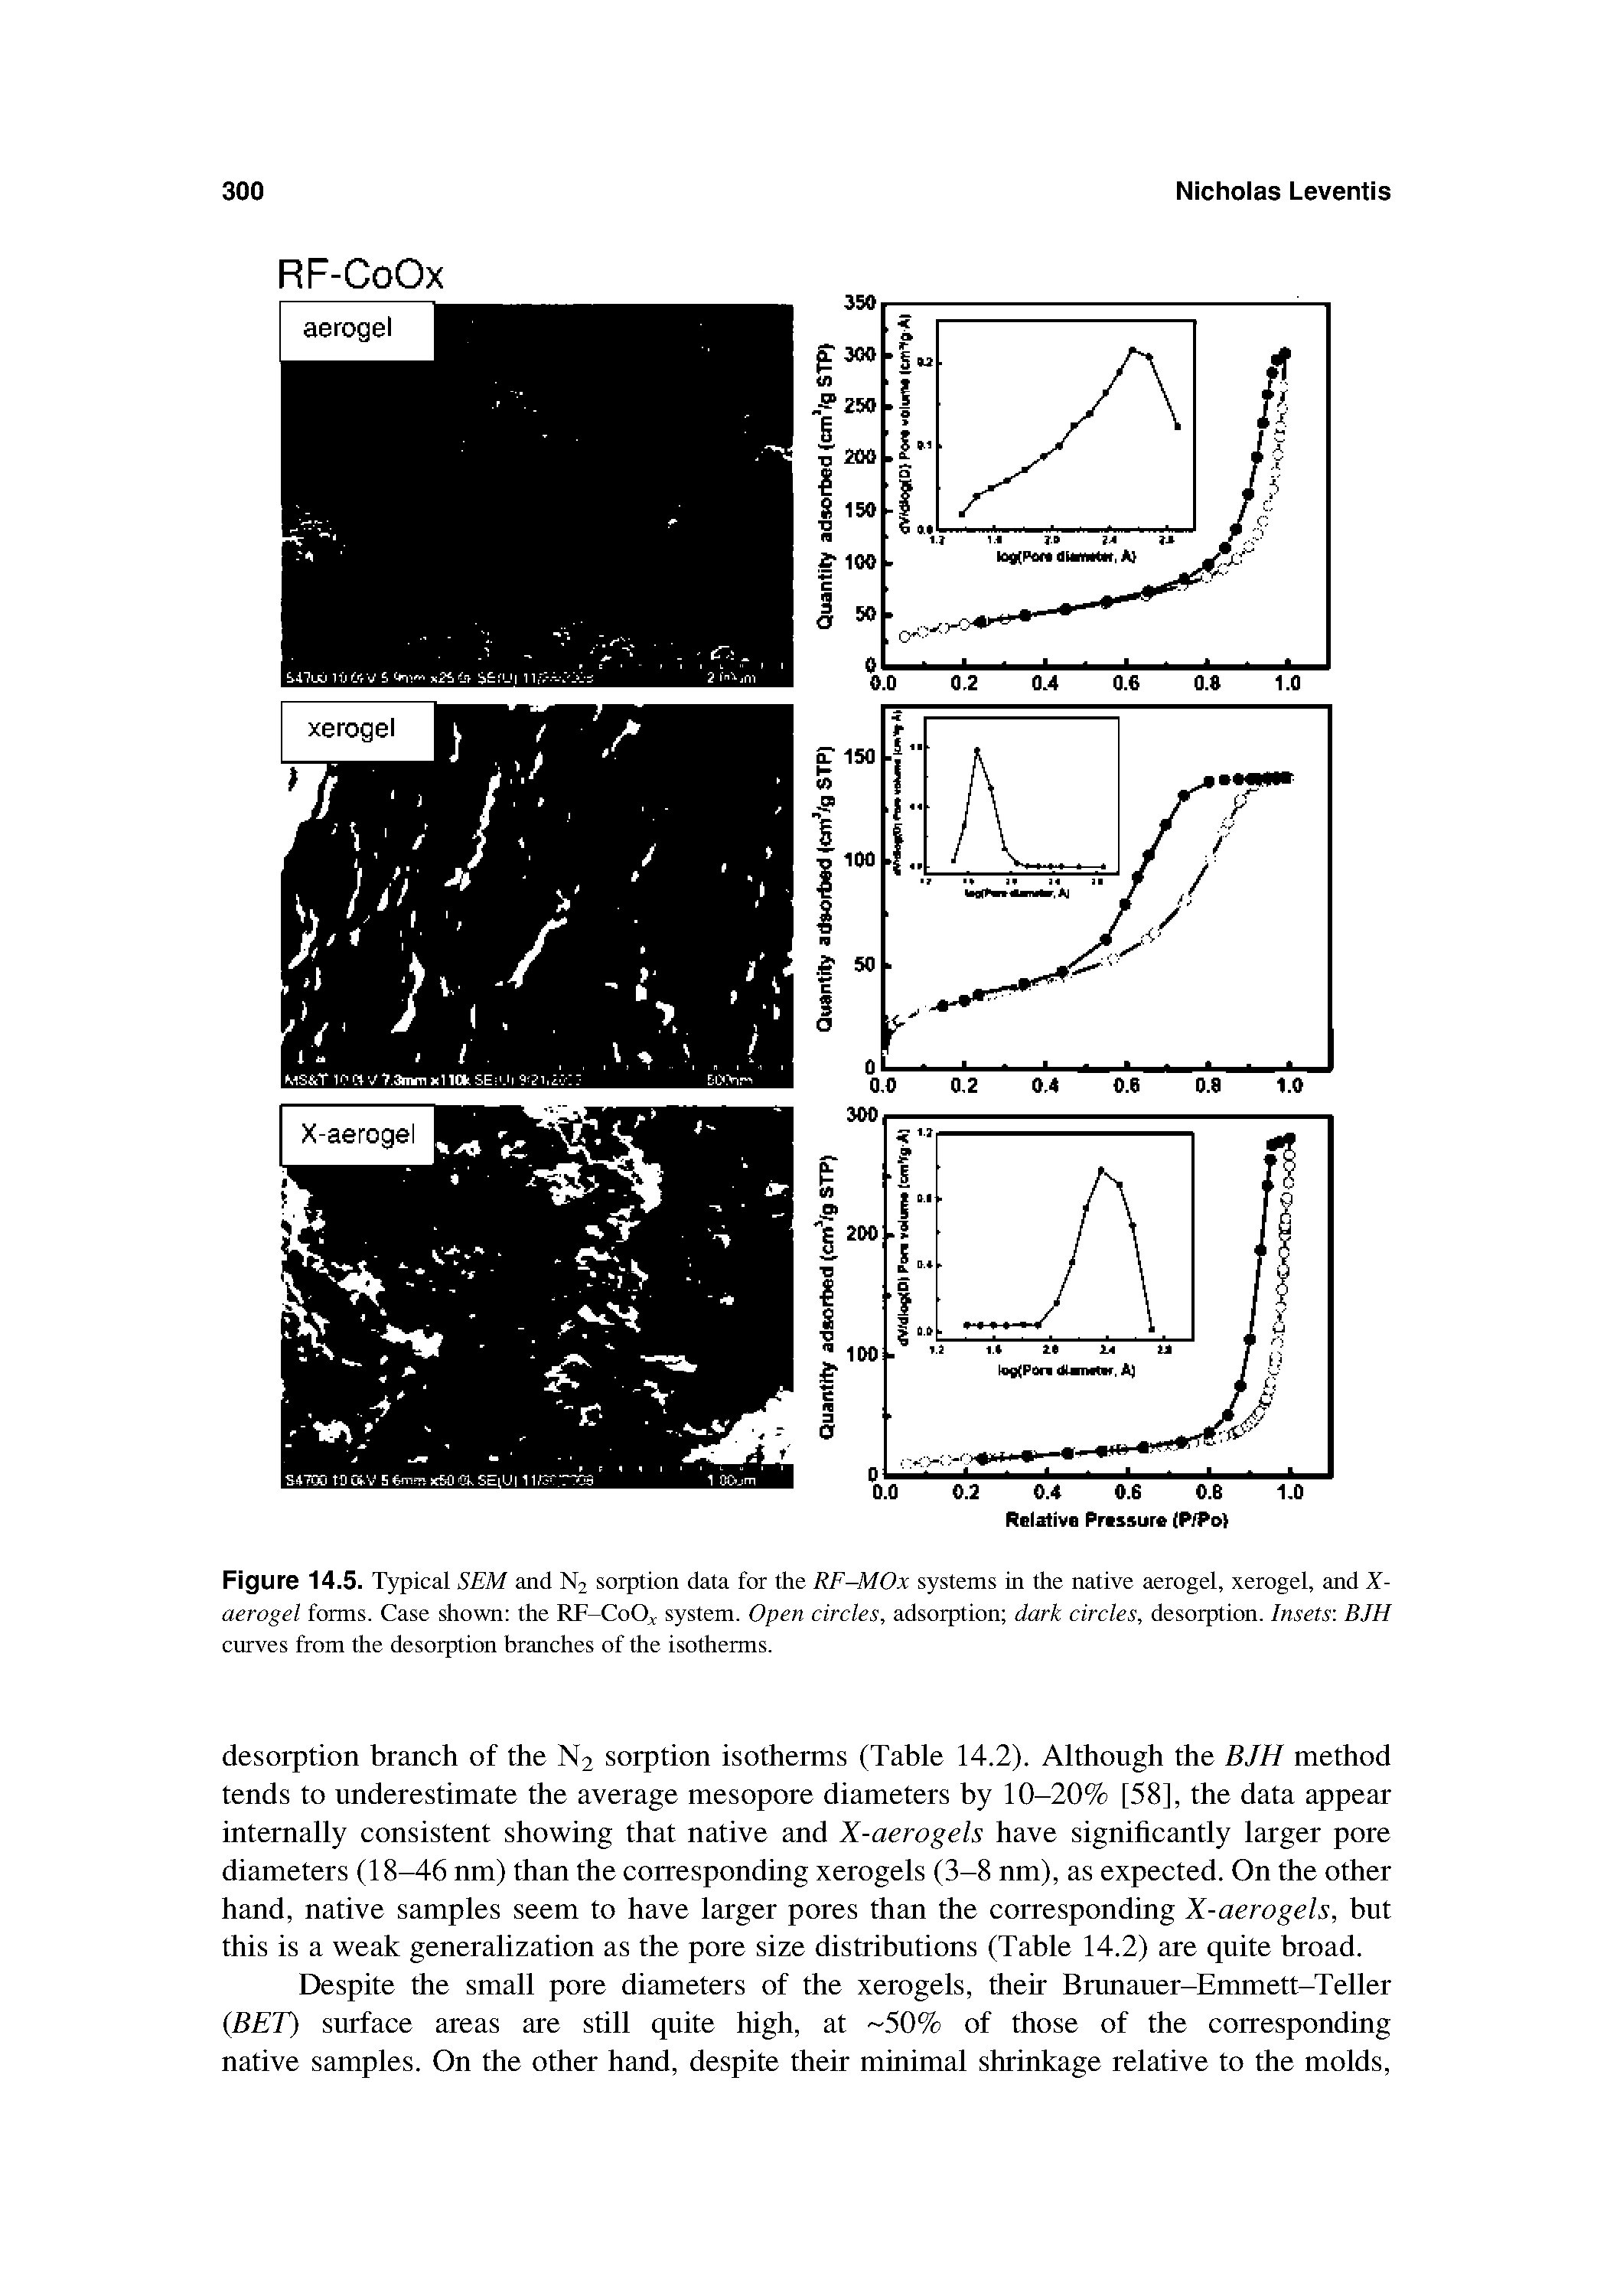 Figure 14.5. Typical SEM and N2 sorption data for the RF-MOx systems in the native aerogel, xerogel, and X-aerogel forms. Case shown the RF-CoO system. Open circles, adsorption dark circles, desorption. Insets BJH curves from the desorption branches of the isotherms.